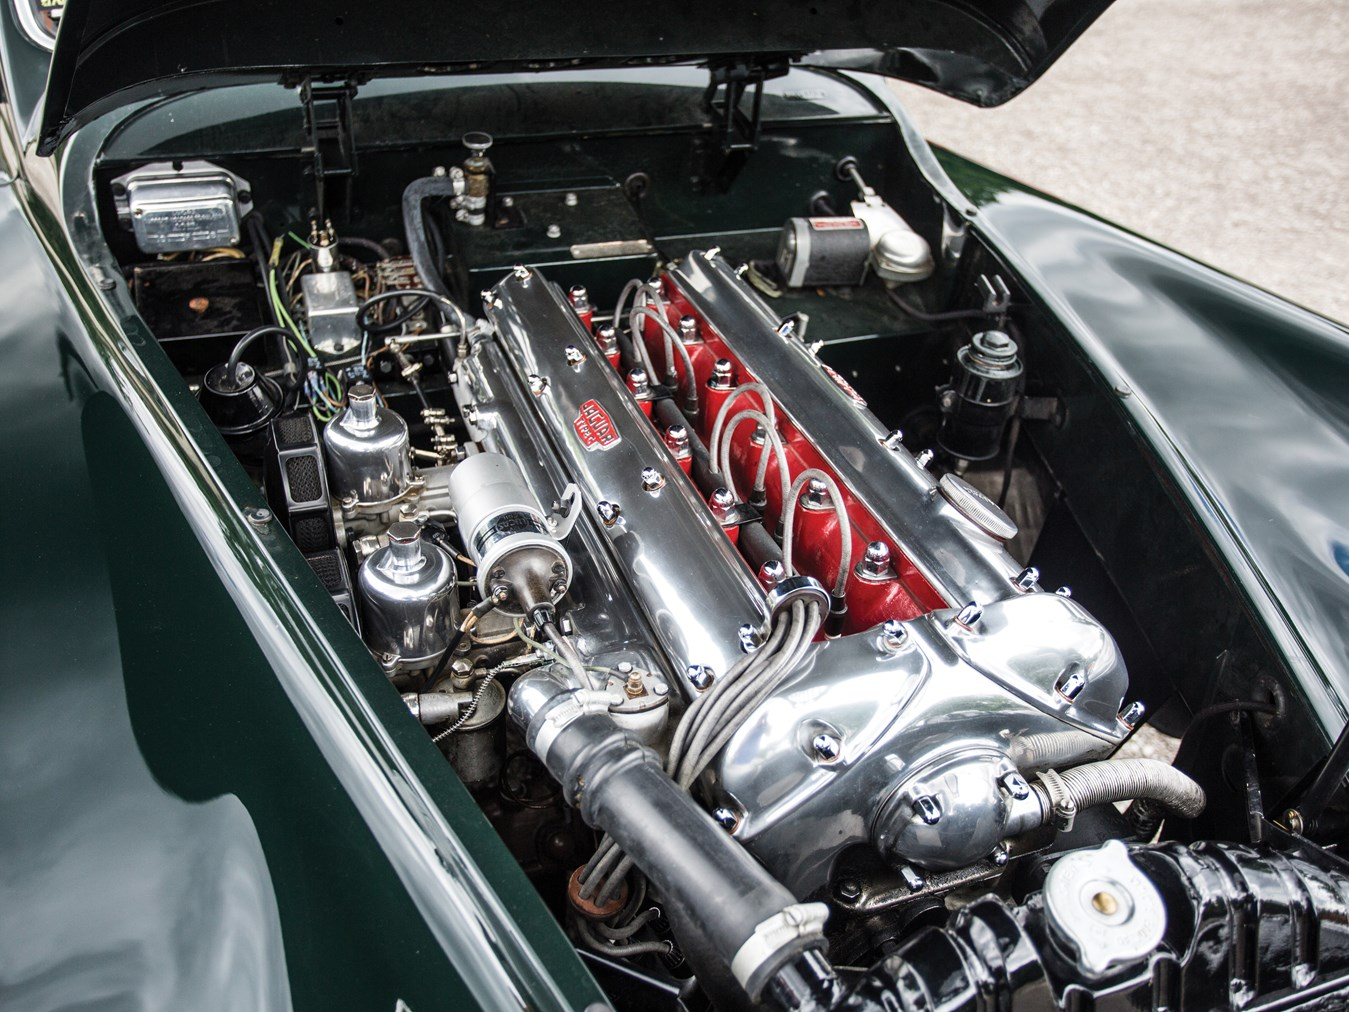 The DOHC Jaguar XK engine was intentionally designed to look fantastic as well as perform fantastically.